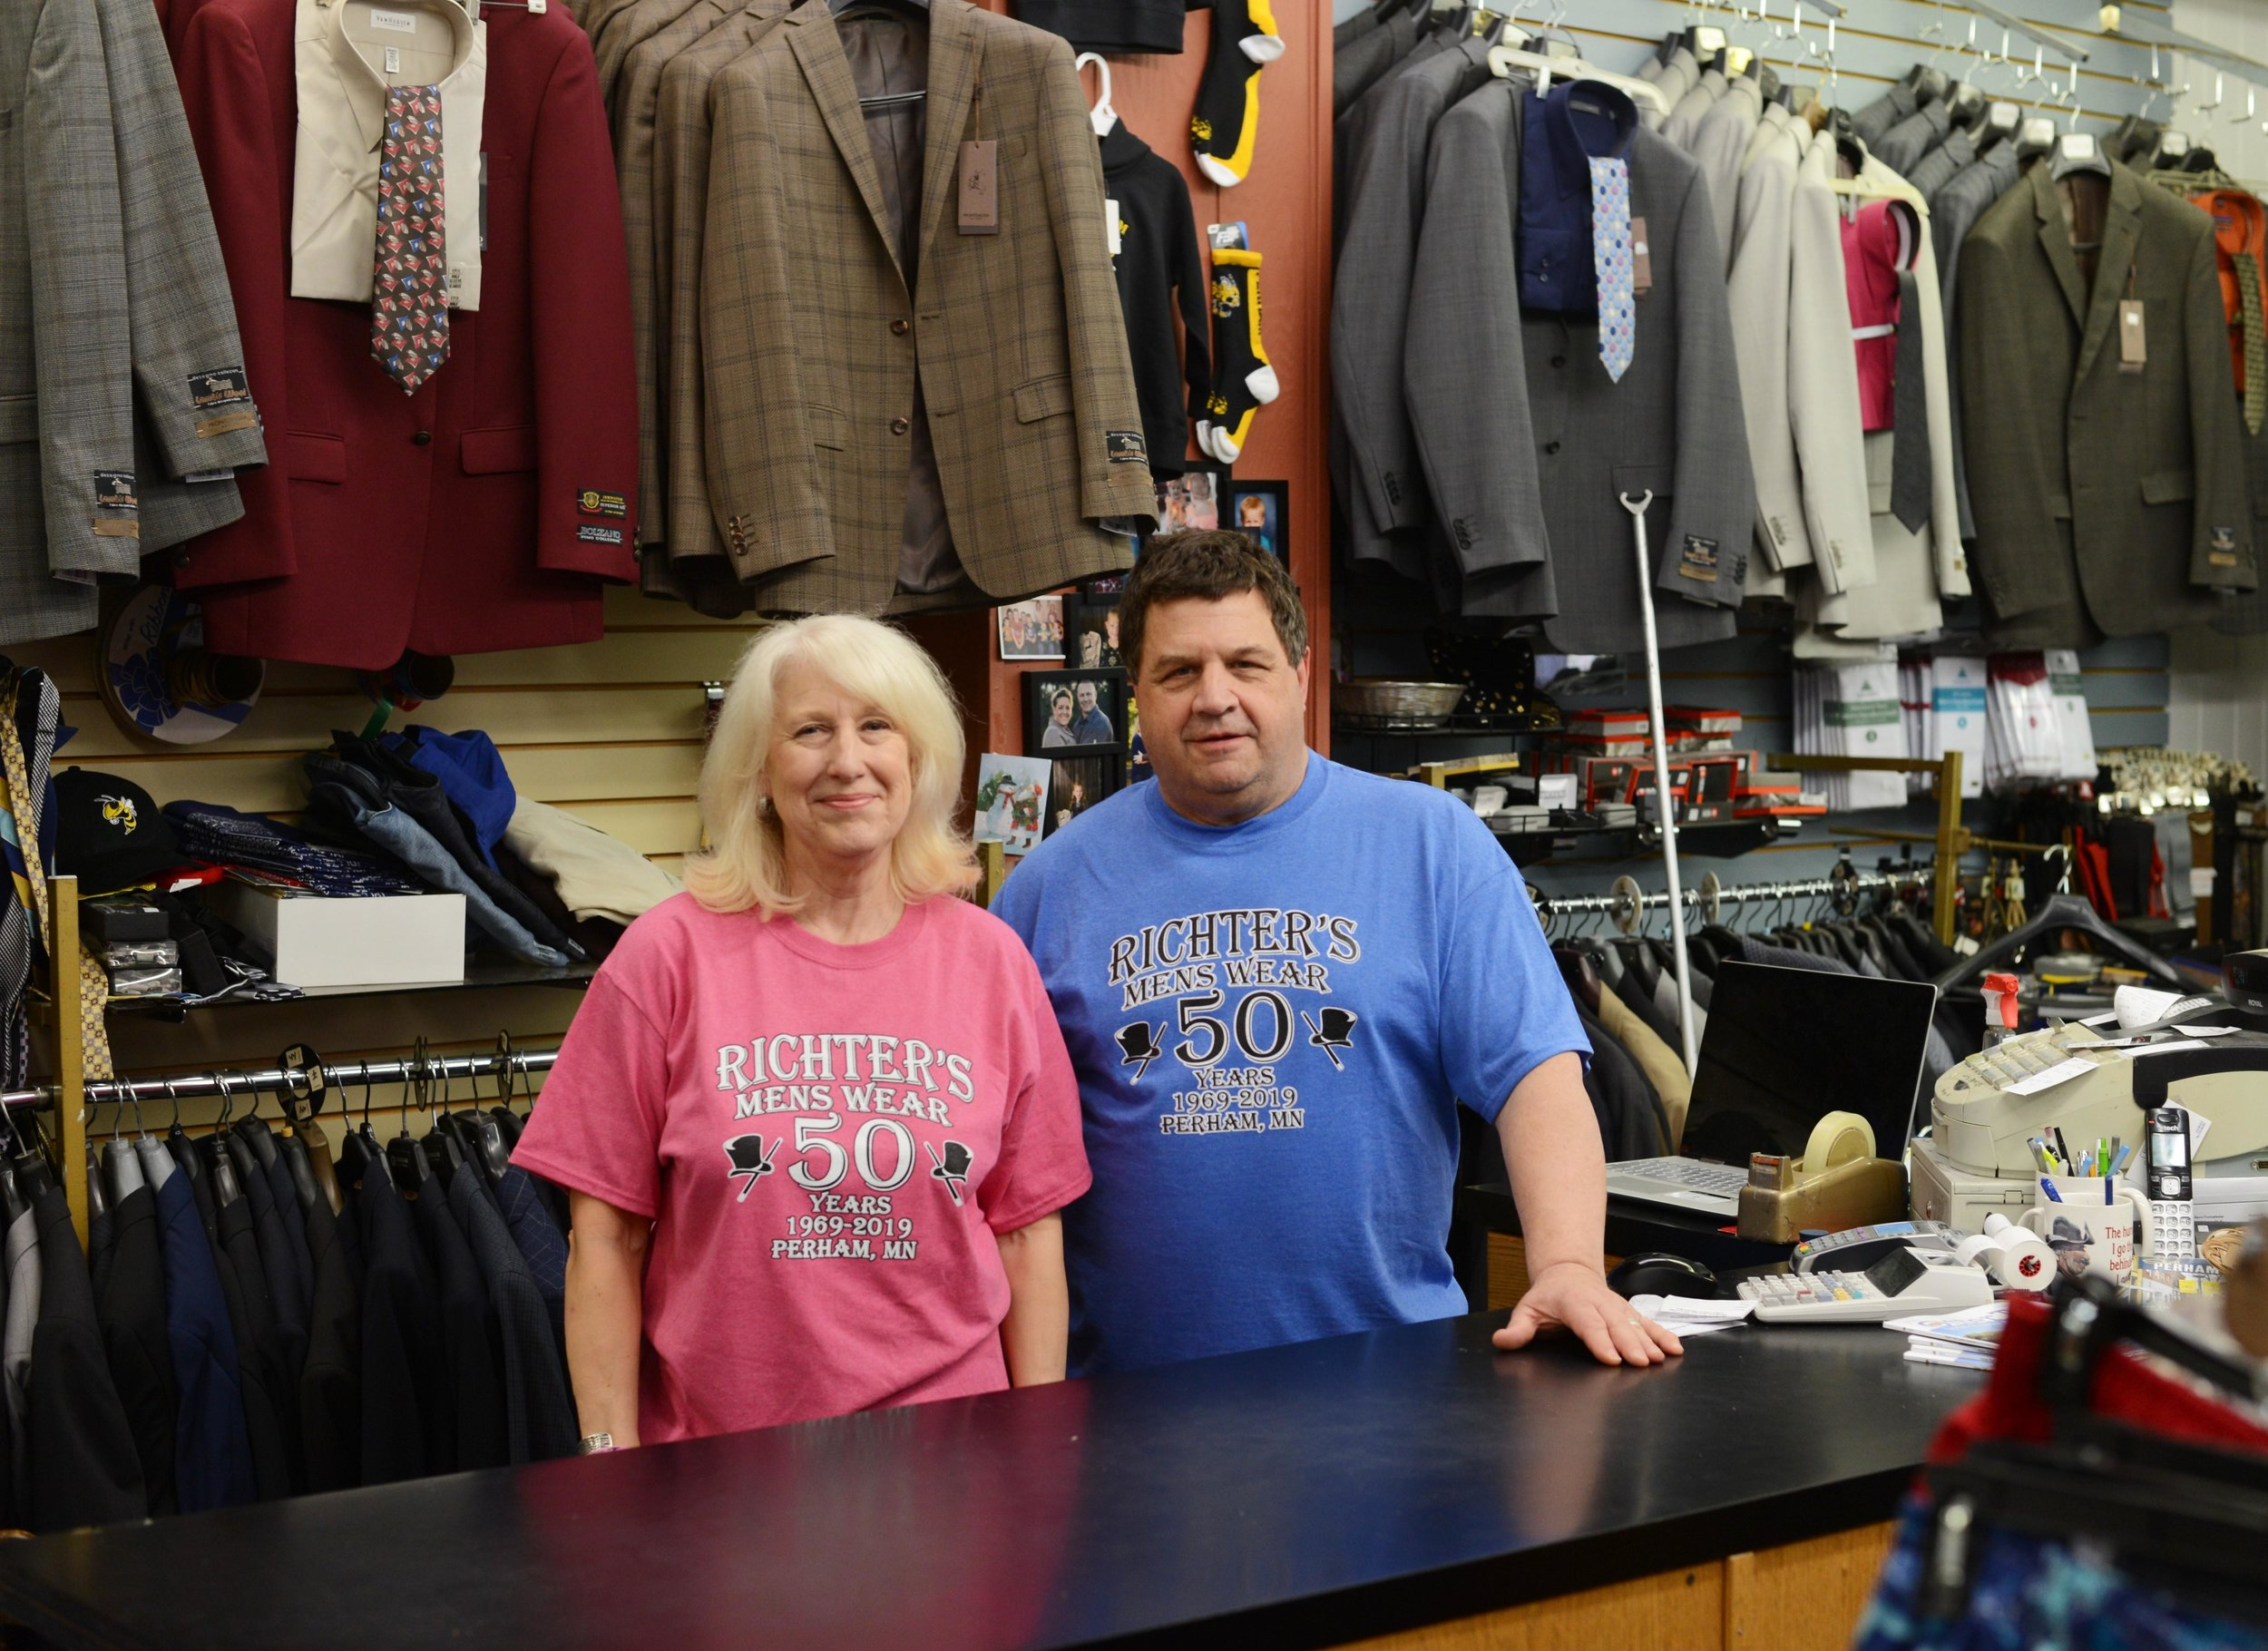 Connie and Steve Richter pose for a portrait in Richter's Men's Wear on May 28. Steve and Connie took over the store in 1983 from Steve's parents Gardy and Hilde Richter. (Carter Jones/ FOCUS)